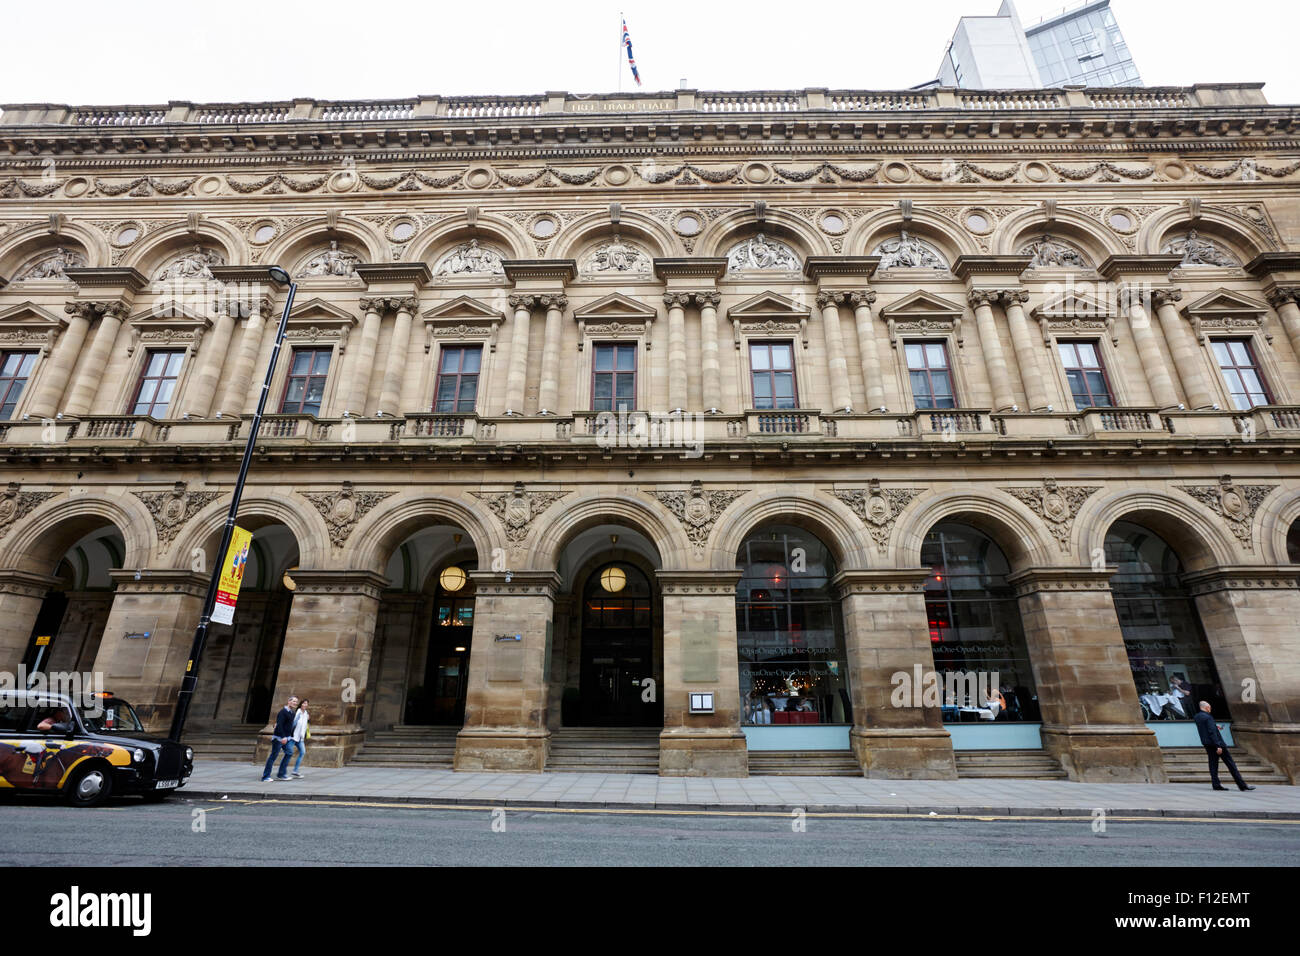 Free Trade Hall on St Peters site of the Peterloo massacre now radisson hotel Manchester England UK - Stock Image